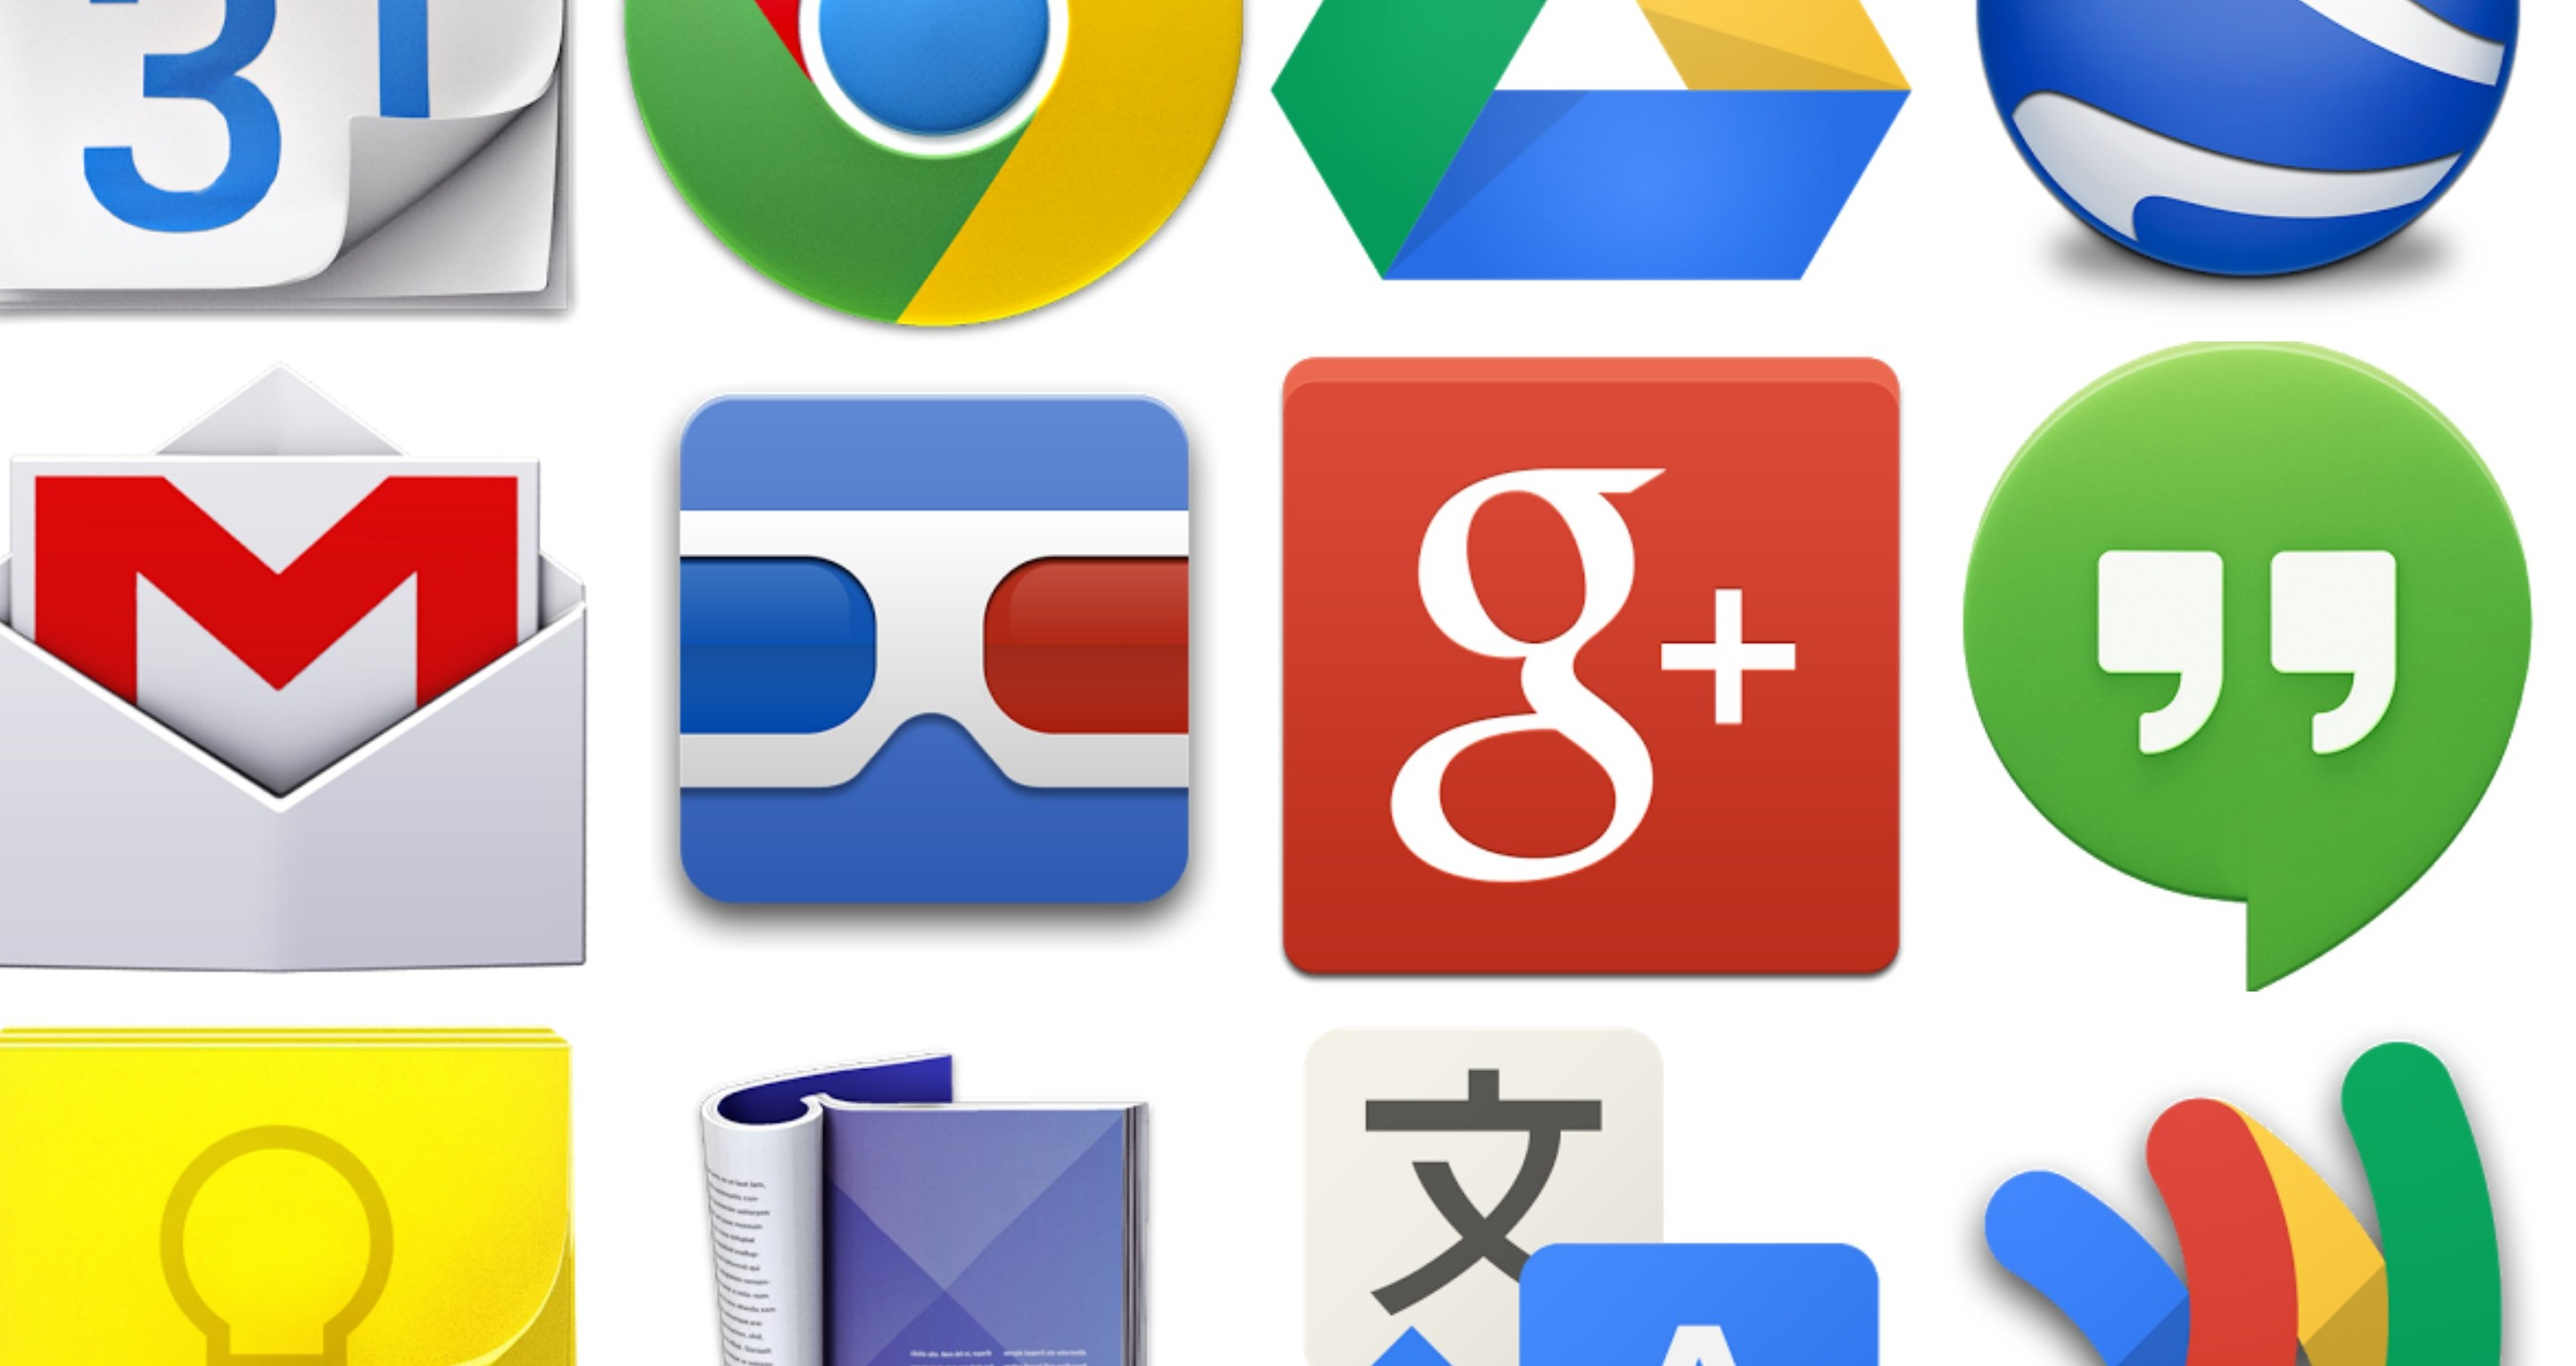 Google-apps-updated-Oct-29th